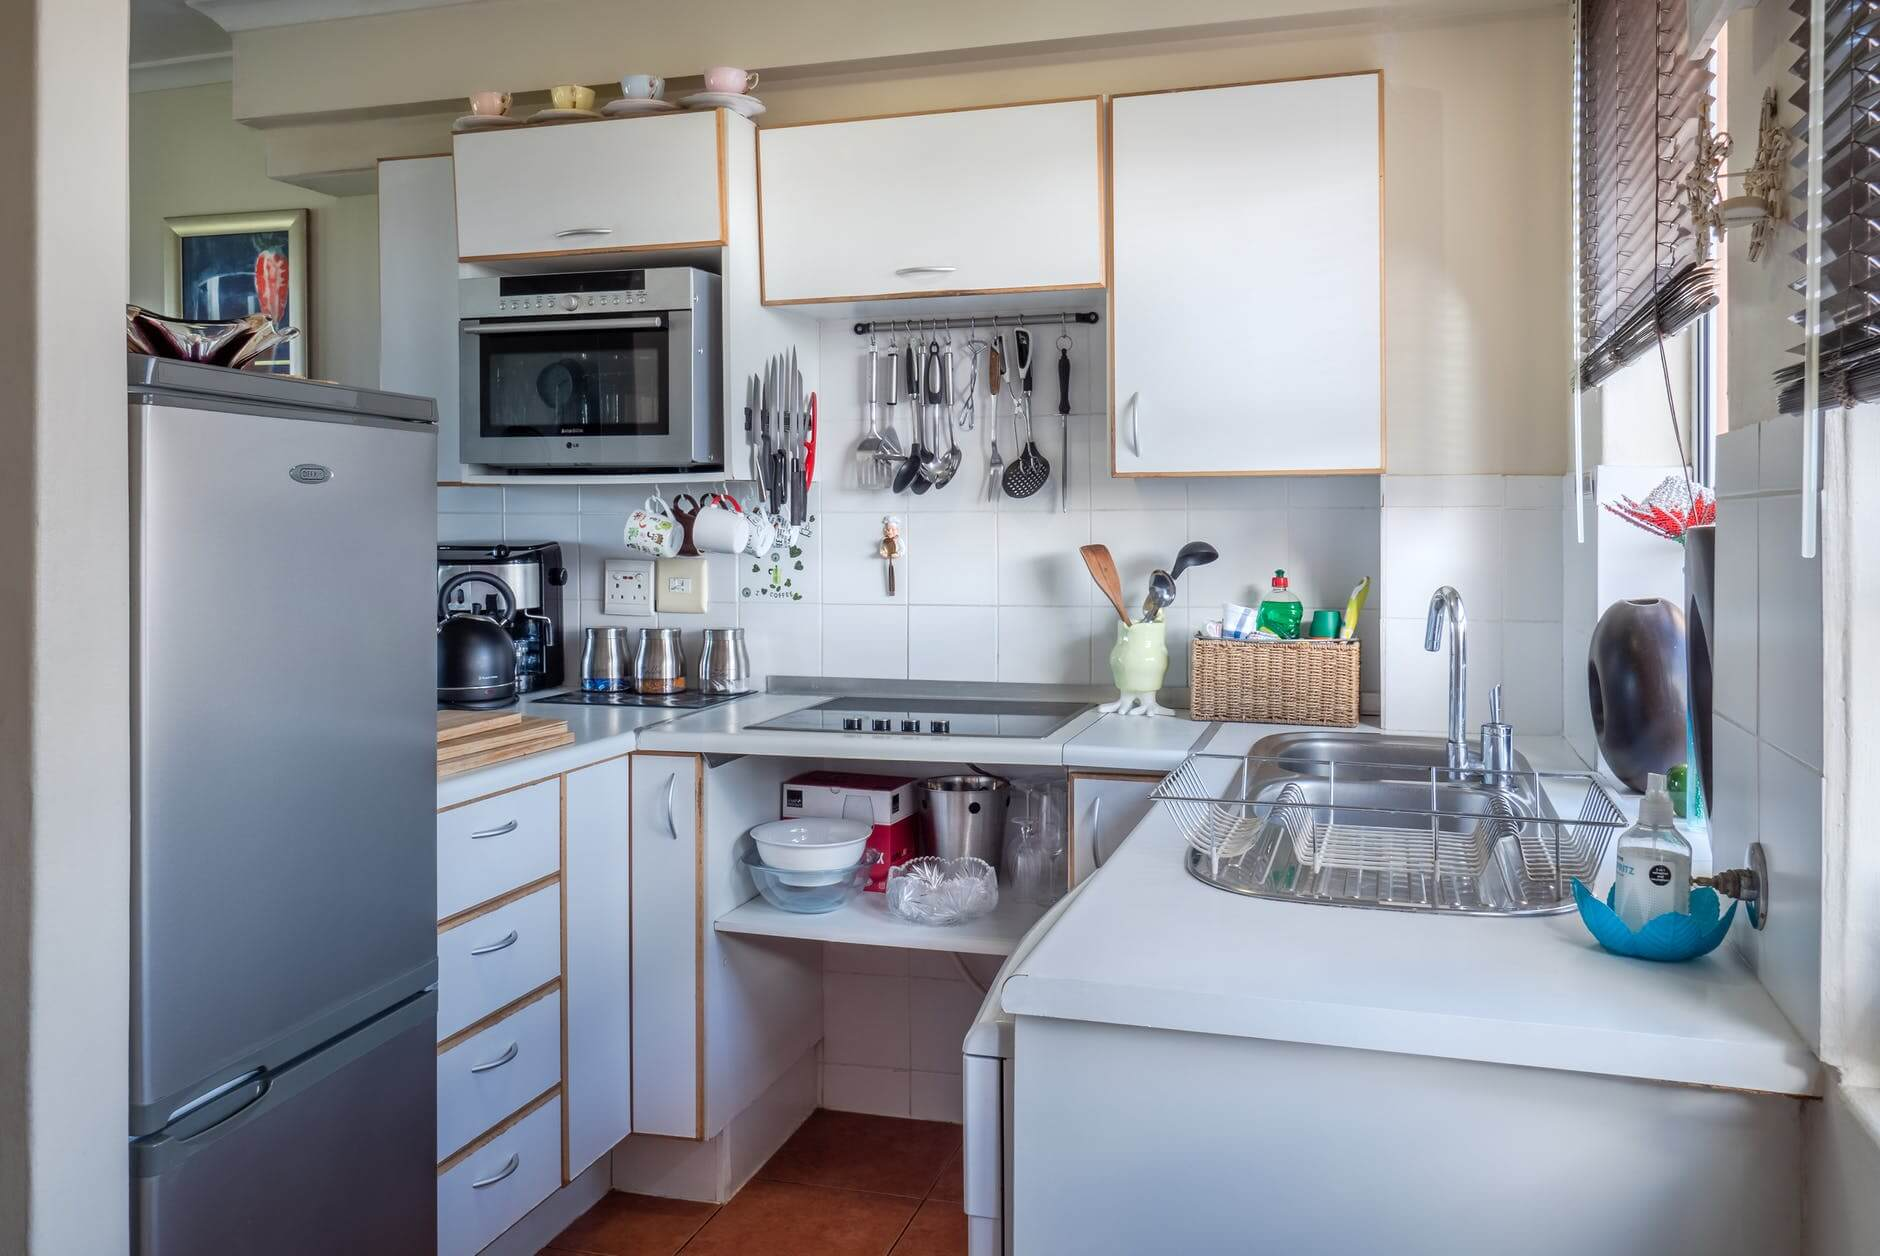 A kitchen with narrow cabinet units